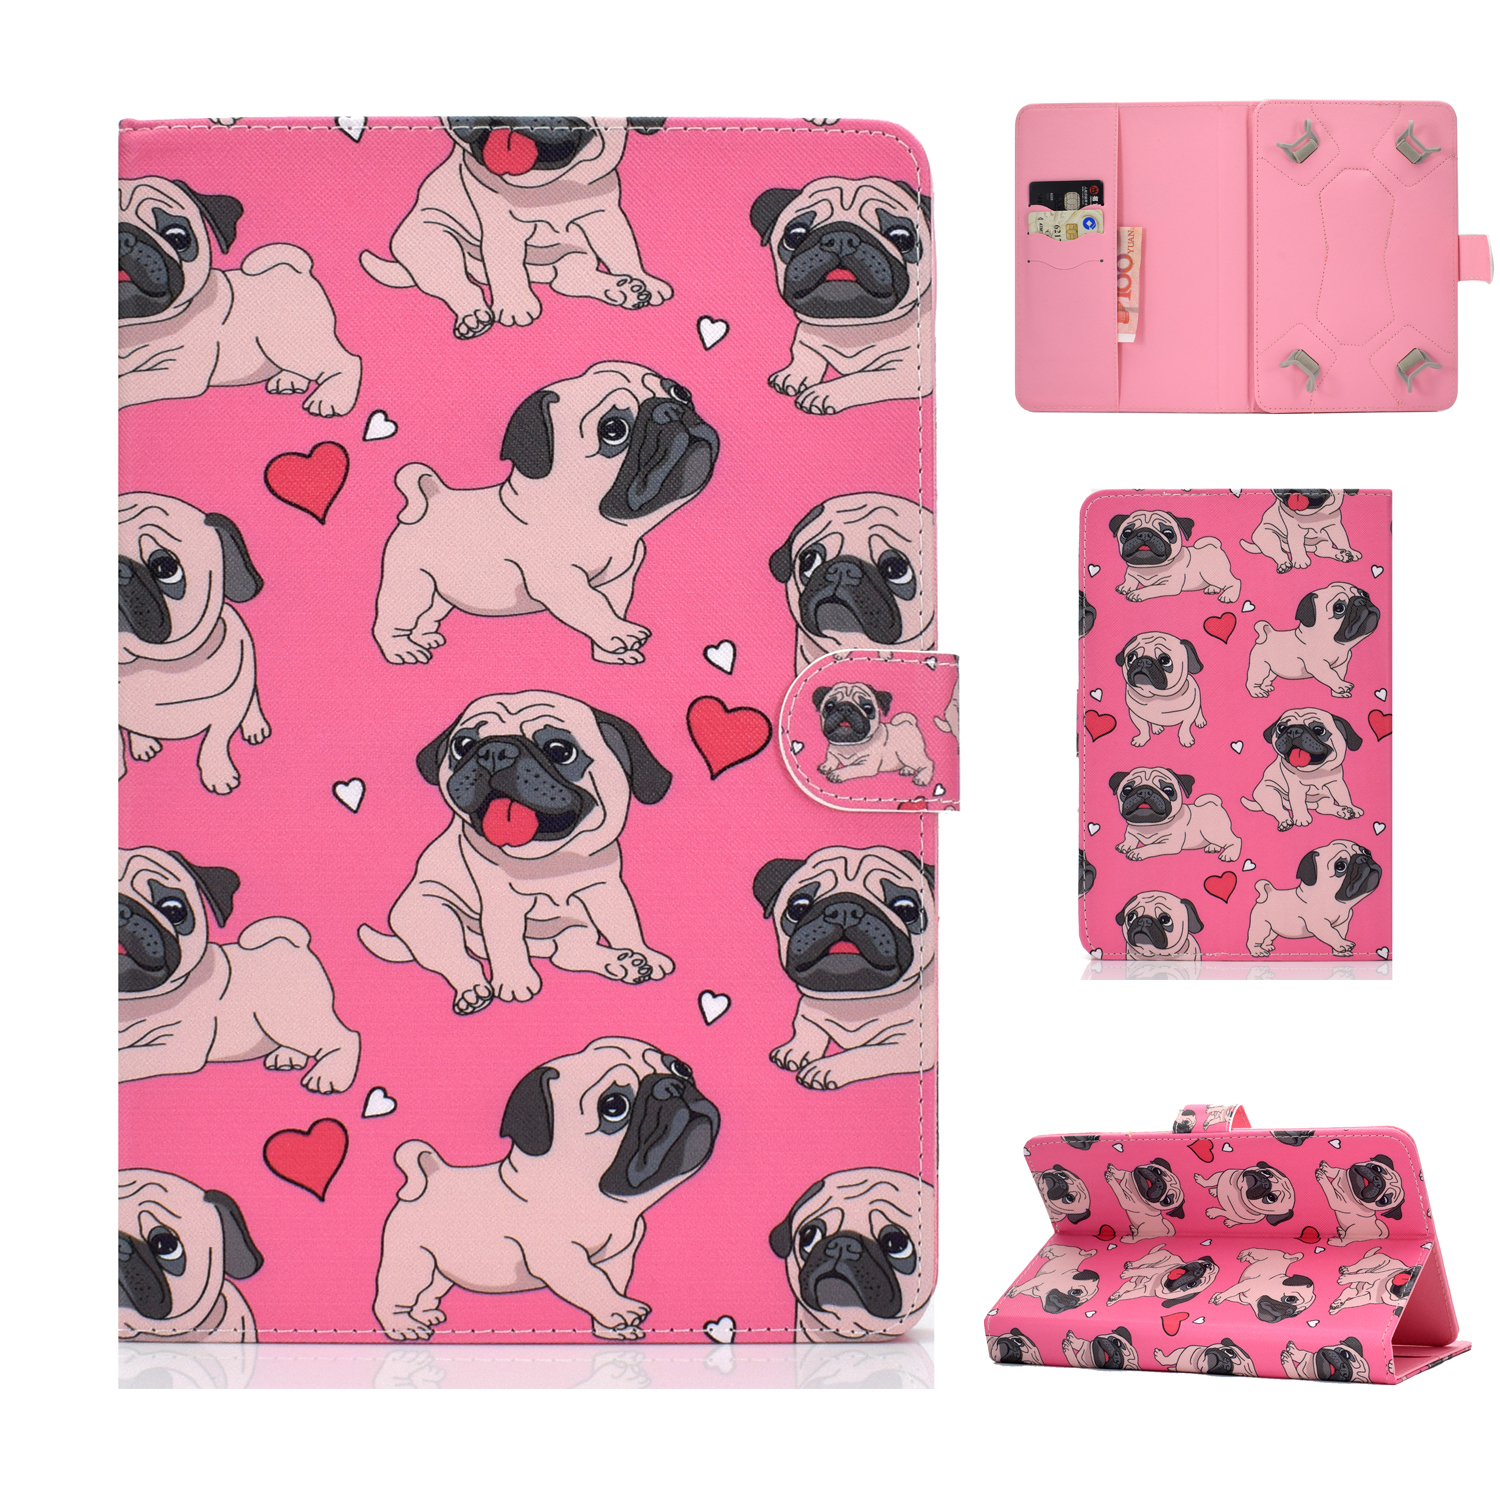 Universal 10Inches Laptop Protective Case with Front Snap Cute Cartoon Color Painted PU Cover  Caring dog